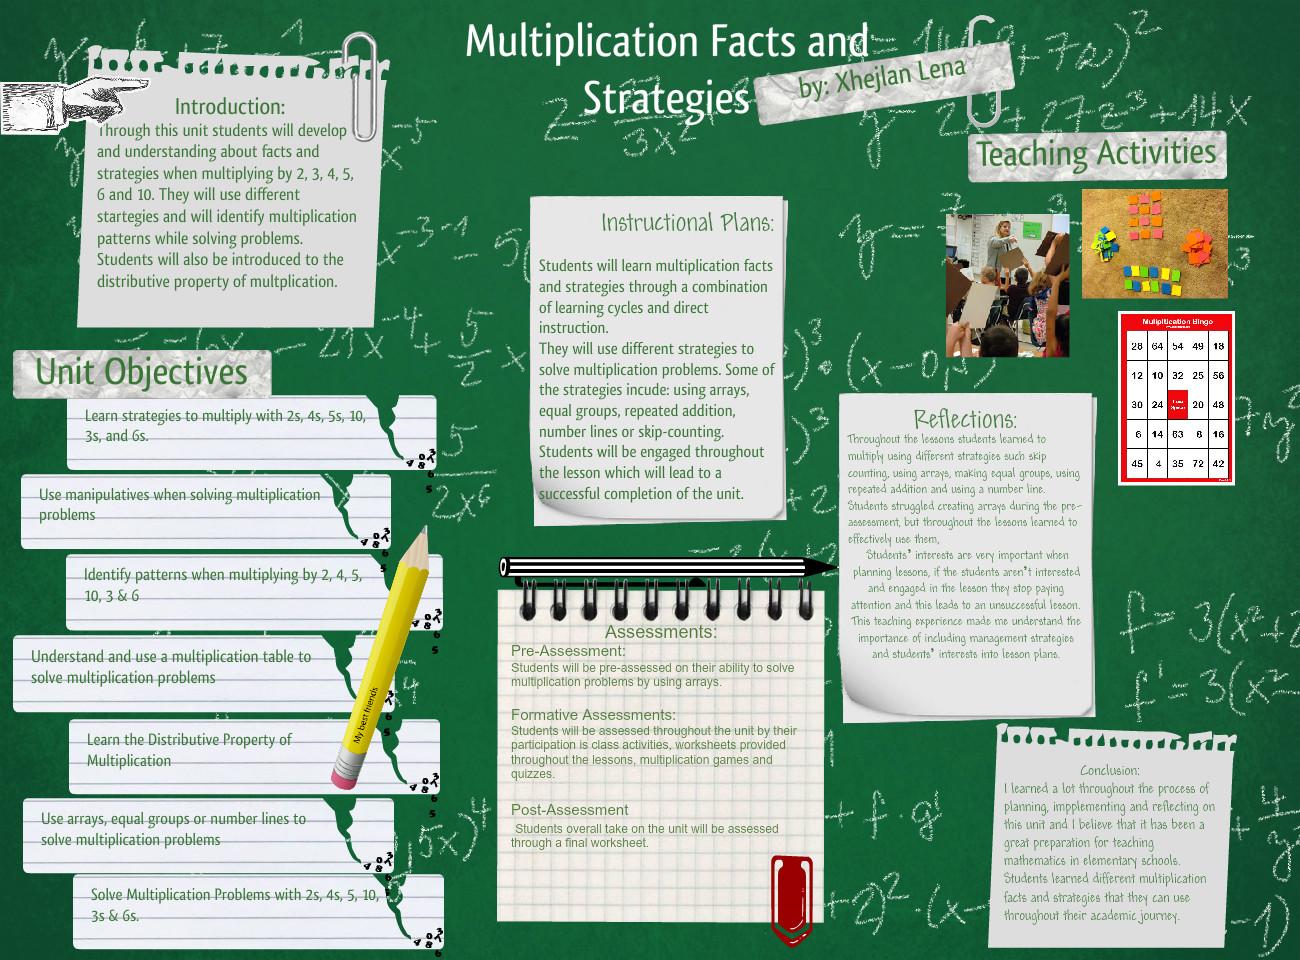 [2015] Xhejlan Lena: Multiplication Facts and Strategies